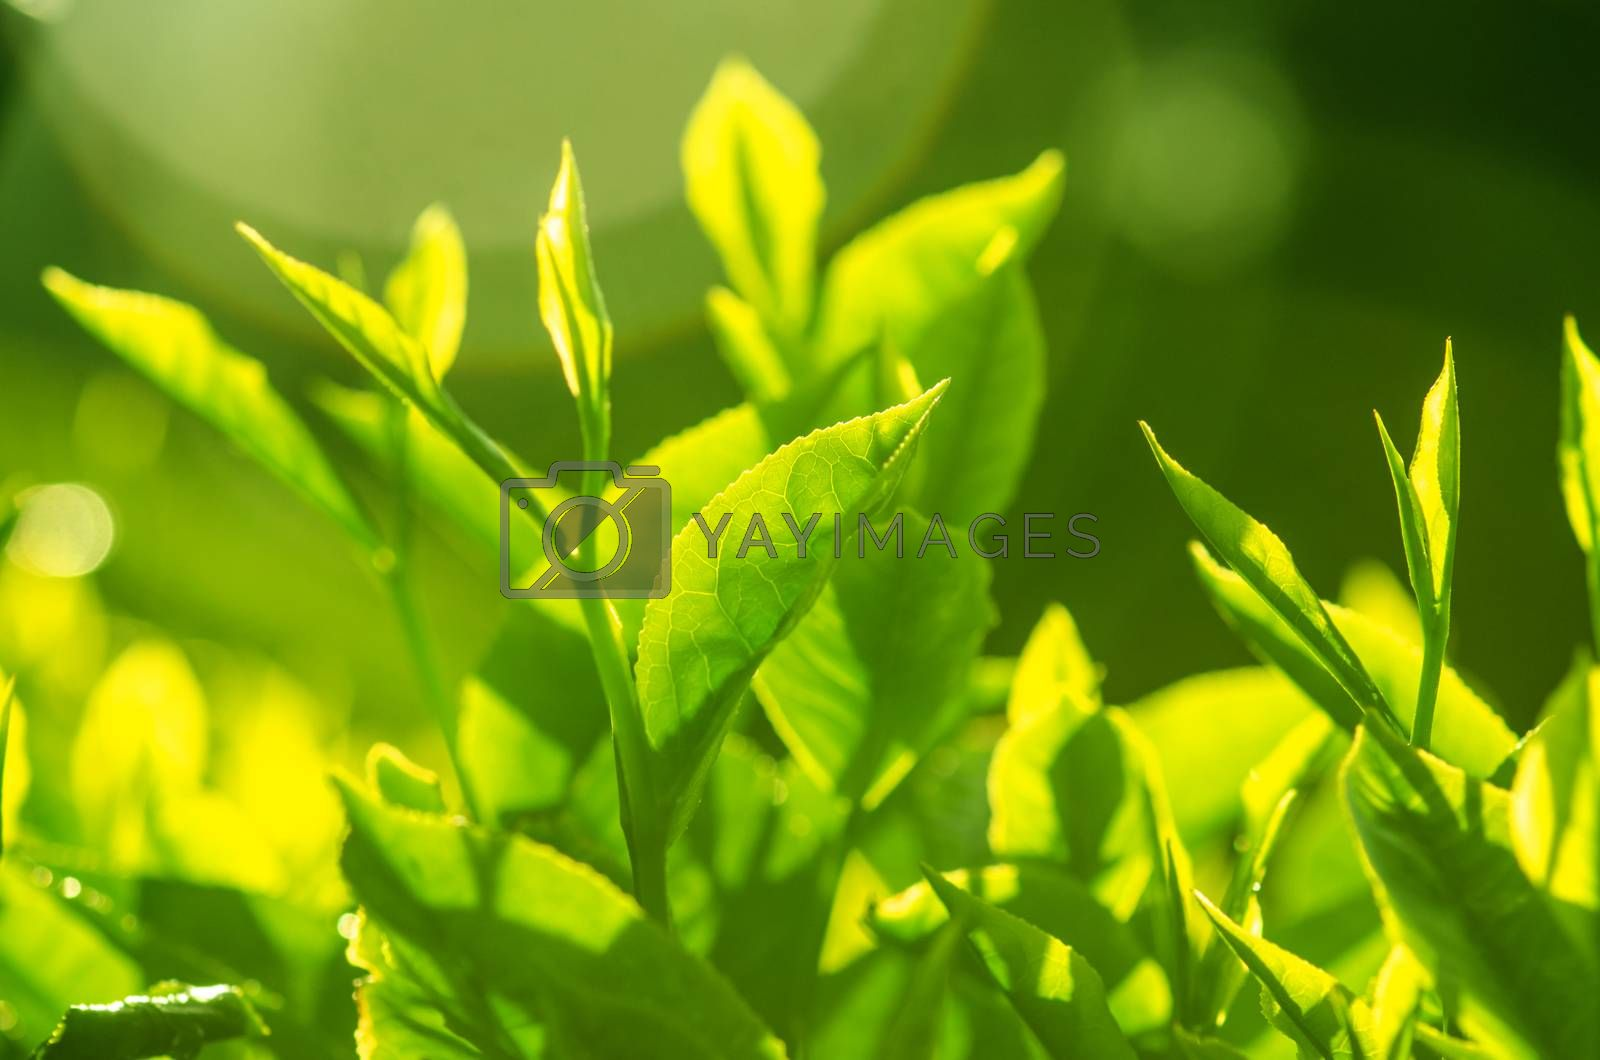 Tea leaf with plantation at the background, morning view.